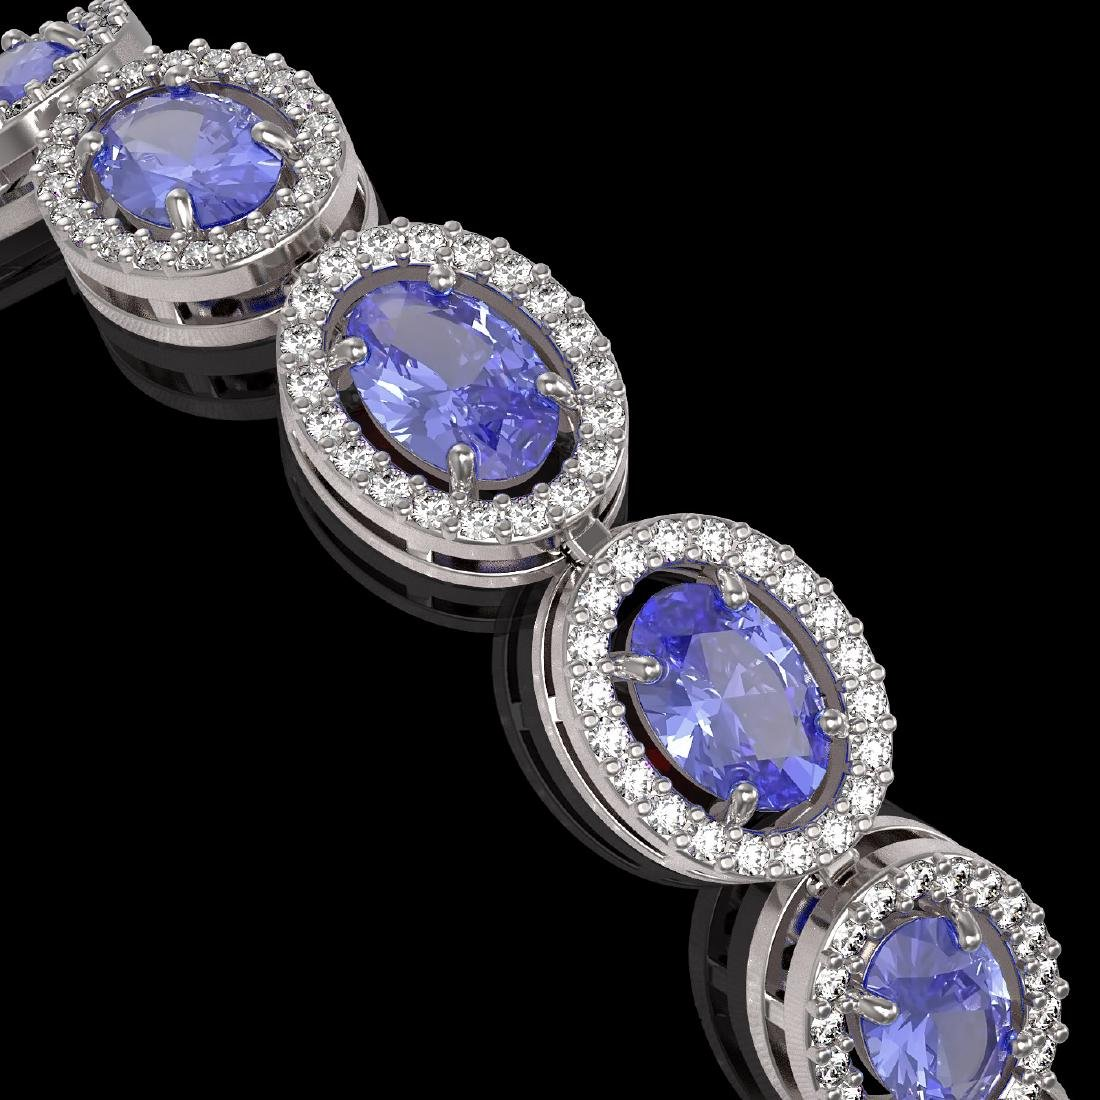 14.25 CTW Tanzanite & Diamond Halo Bracelet 10K White